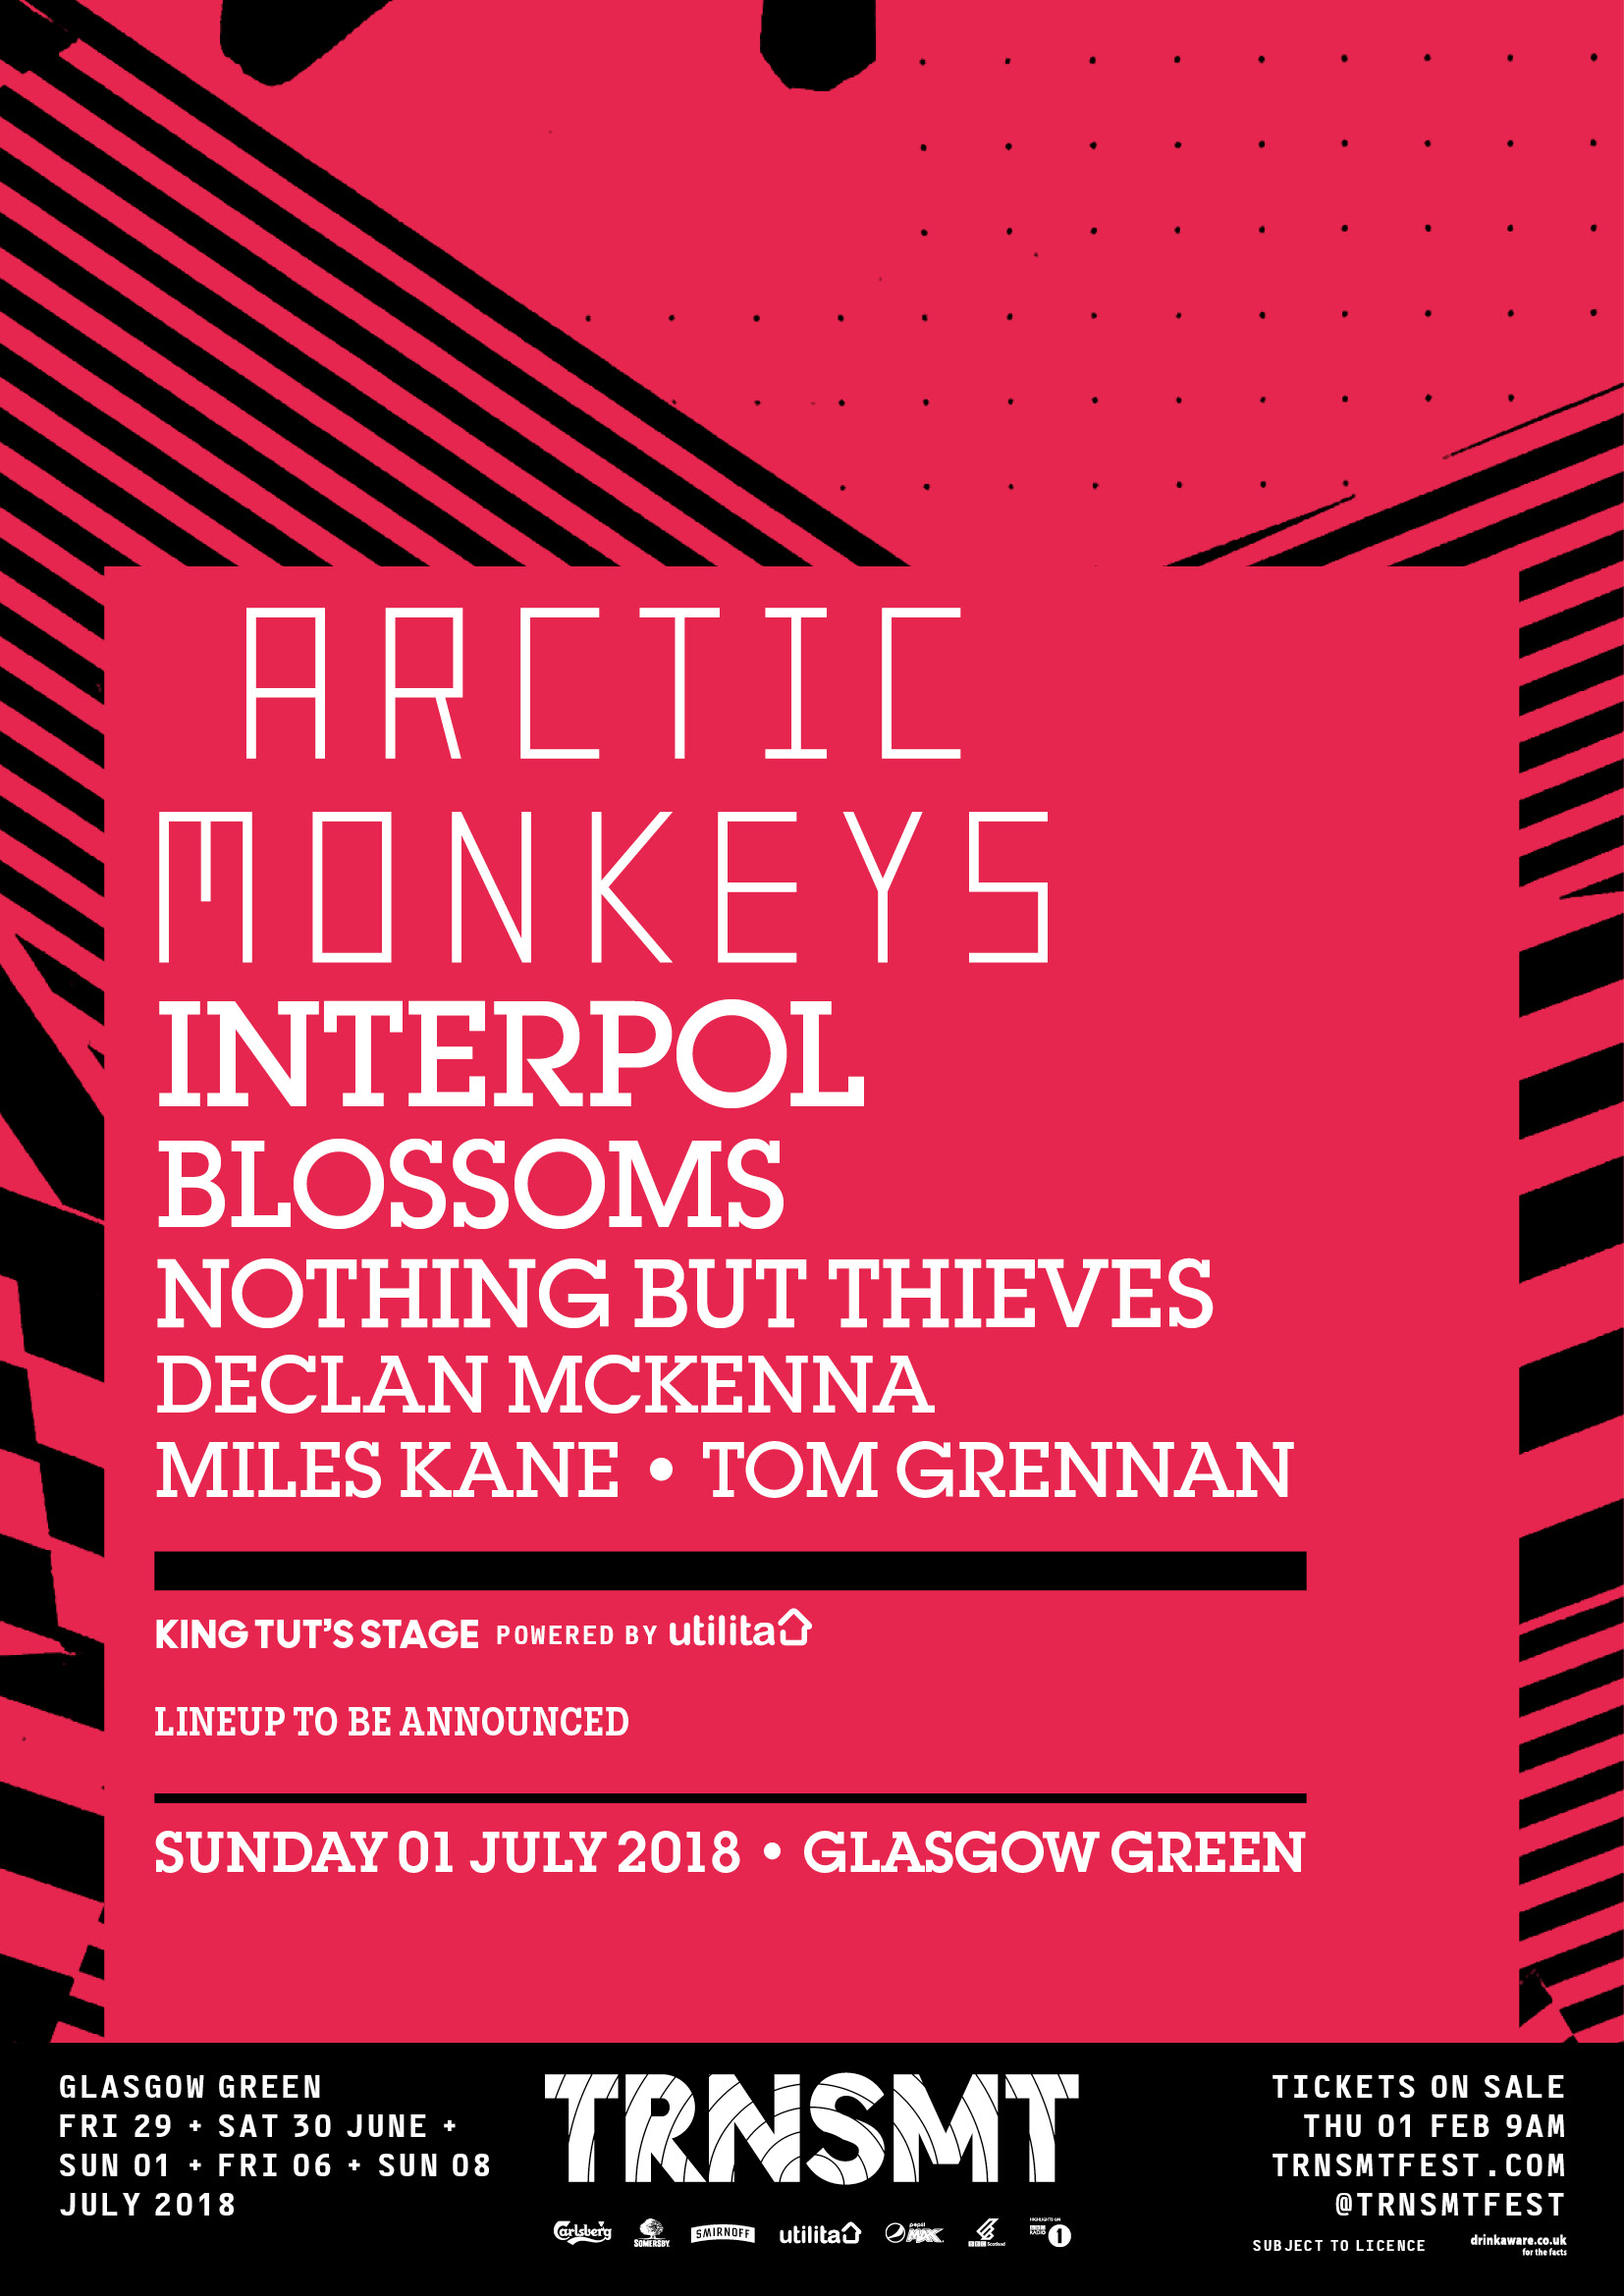 TRNSMT festival line up 1 July 2018